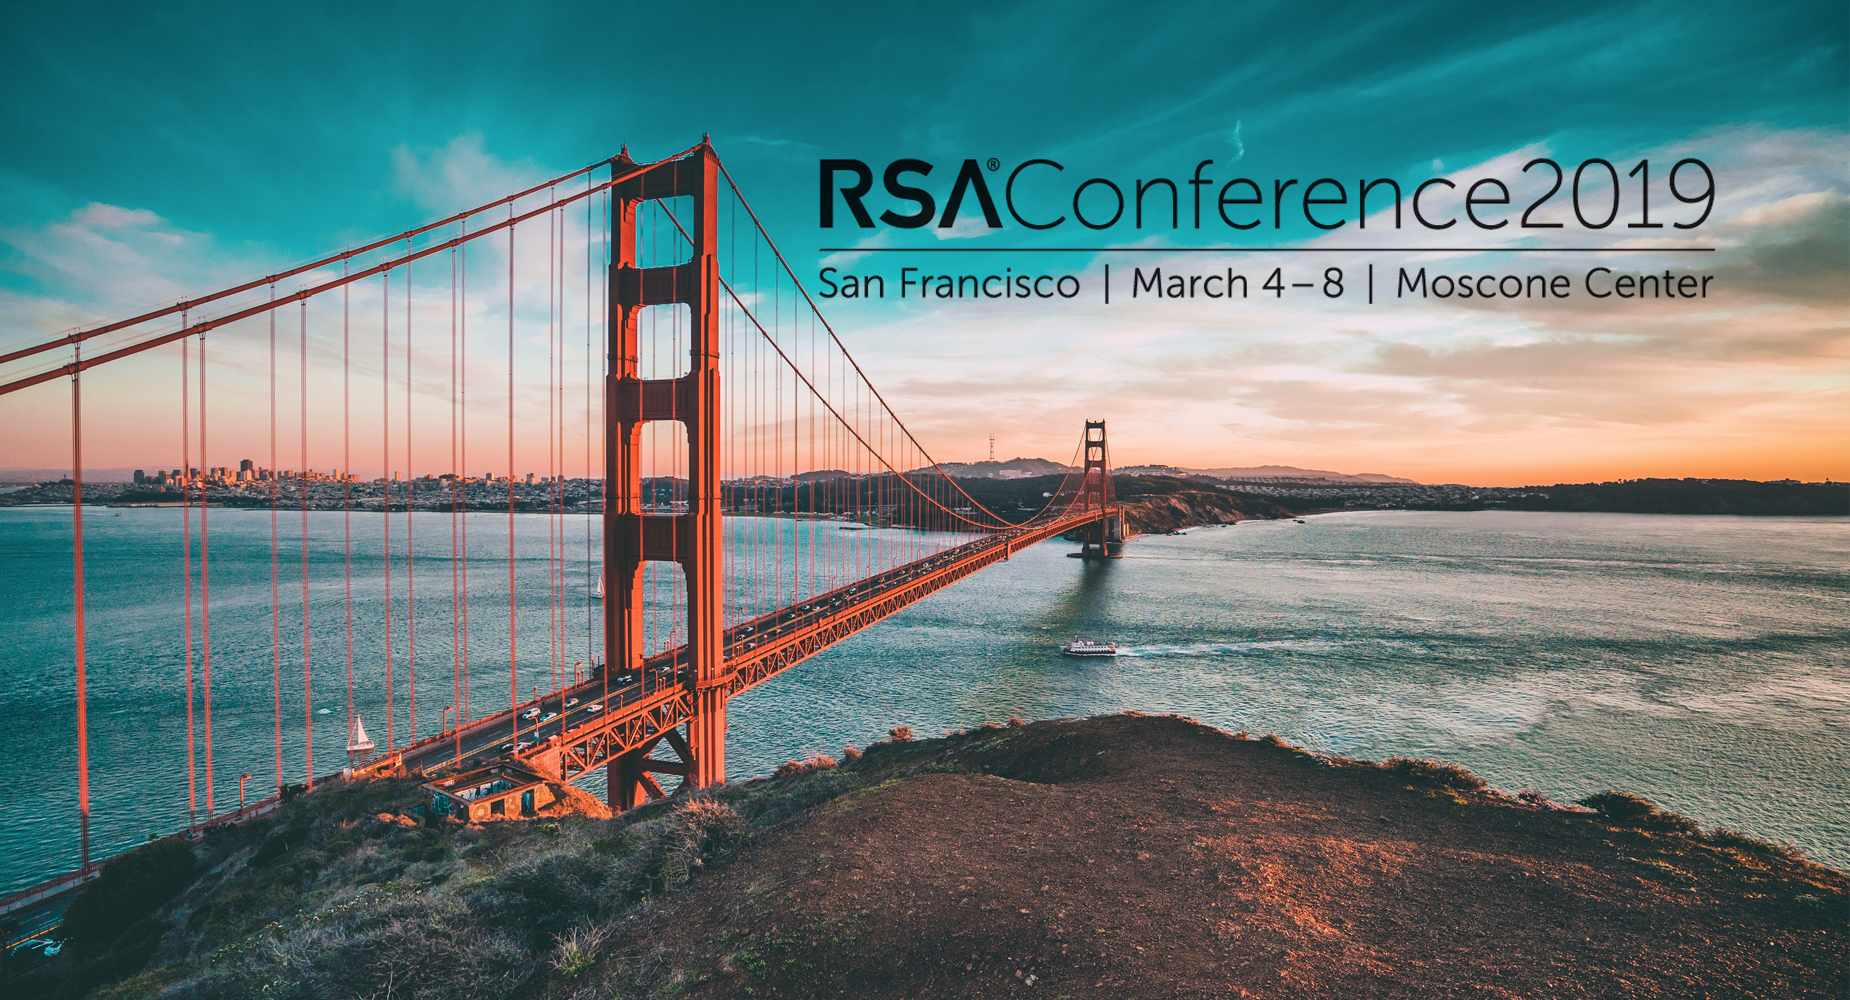 RSA Conference USA San Francisco 2019 Coverage 2.jpg